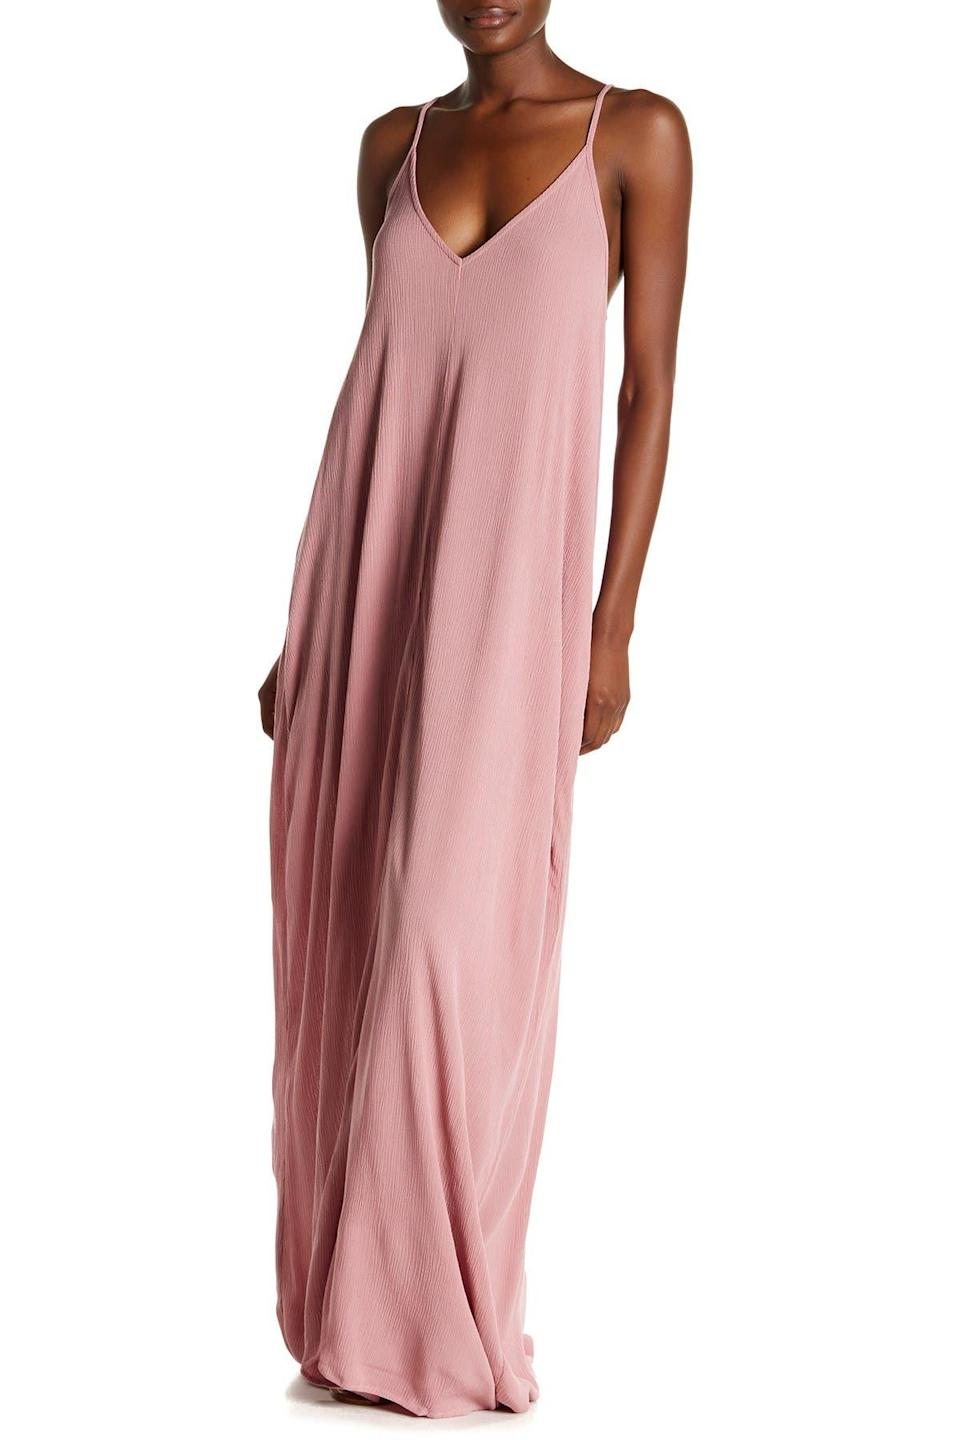 """<h2>Love Stitch V-Neck Sleeveless Maxi Dress</h2><br><strong><em>The Best-Kept Secret</em></strong><br><br>Summer after summer, we watch this lightweight, stylish dress sell out on Nordstrom Rack, and the reviews continue to pile up. Savvy shoppers know that this under-$30 hidden gem is worth buying up in multiples — it's the kind of frock you'll wear all summer long.<br><br><strong>The Hype: </strong>4.2 out of 5 stars; 3,278 reviews on NordstromRack.com<br><br><strong>What They're Saying: </strong>""""Summer dress VIP. I own this dress in roughly 20 different colors/patterns. The BEST for the summer."""" — Christinadreams08, NordstromRack.com reviewer<br><br><em>Shop <strong><a href=""""http://nordstromrack.com"""" rel=""""nofollow noopener"""" target=""""_blank"""" data-ylk=""""slk:Nordstrom Rack"""" class=""""link rapid-noclick-resp"""">Nordstrom Rack</a></strong></em><br><br><strong>Love Stitch</strong> V-Neck Sleeveless Maxi Dress, $, available at <a href=""""https://go.skimresources.com/?id=30283X879131&url=https%3A%2F%2Fwww.nordstromrack.com%2Fs%2Flove-stitch-v-neck-sleeveless-maxi-dress%2Fn1236804%3Fcolor%3DSMOKE%2520ORCHID"""" rel=""""nofollow noopener"""" target=""""_blank"""" data-ylk=""""slk:Nordstrom Rack"""" class=""""link rapid-noclick-resp"""">Nordstrom Rack</a>"""